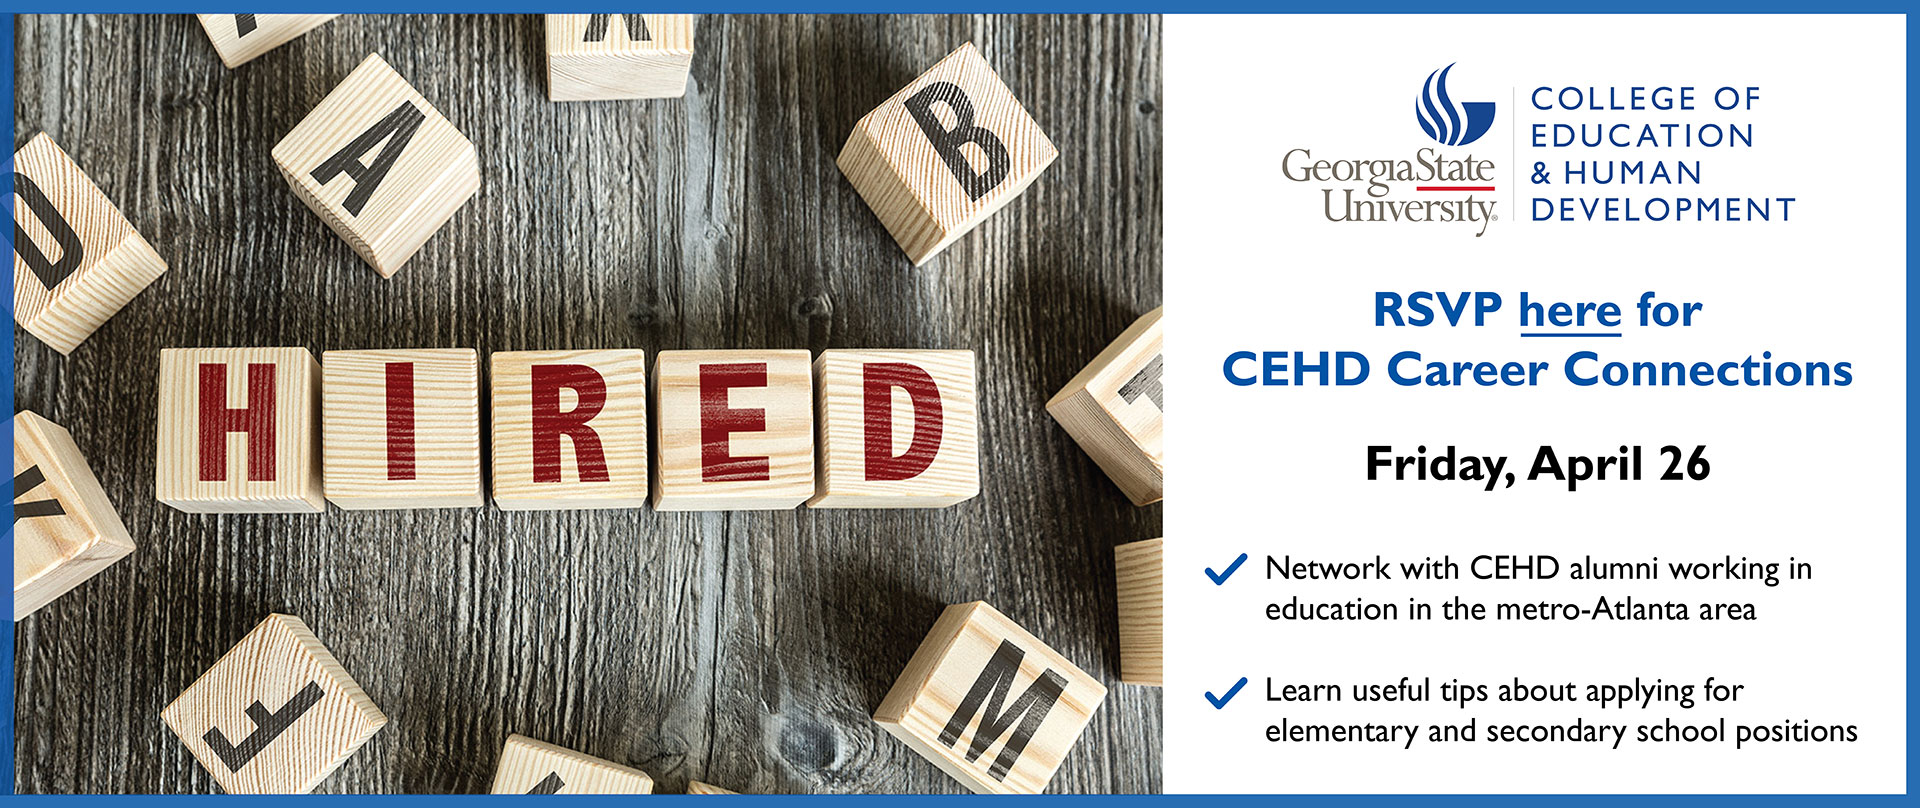 "Image of wooden blocks spelling out the word ""HIRED"" next to the words, ""RSVP here for CEHD Career Connections, Friday, April 26, Network with CEHD alumni working in education in the metro-Atlanta area, Learn useful tips about applying for elementary and secondary school positions."""